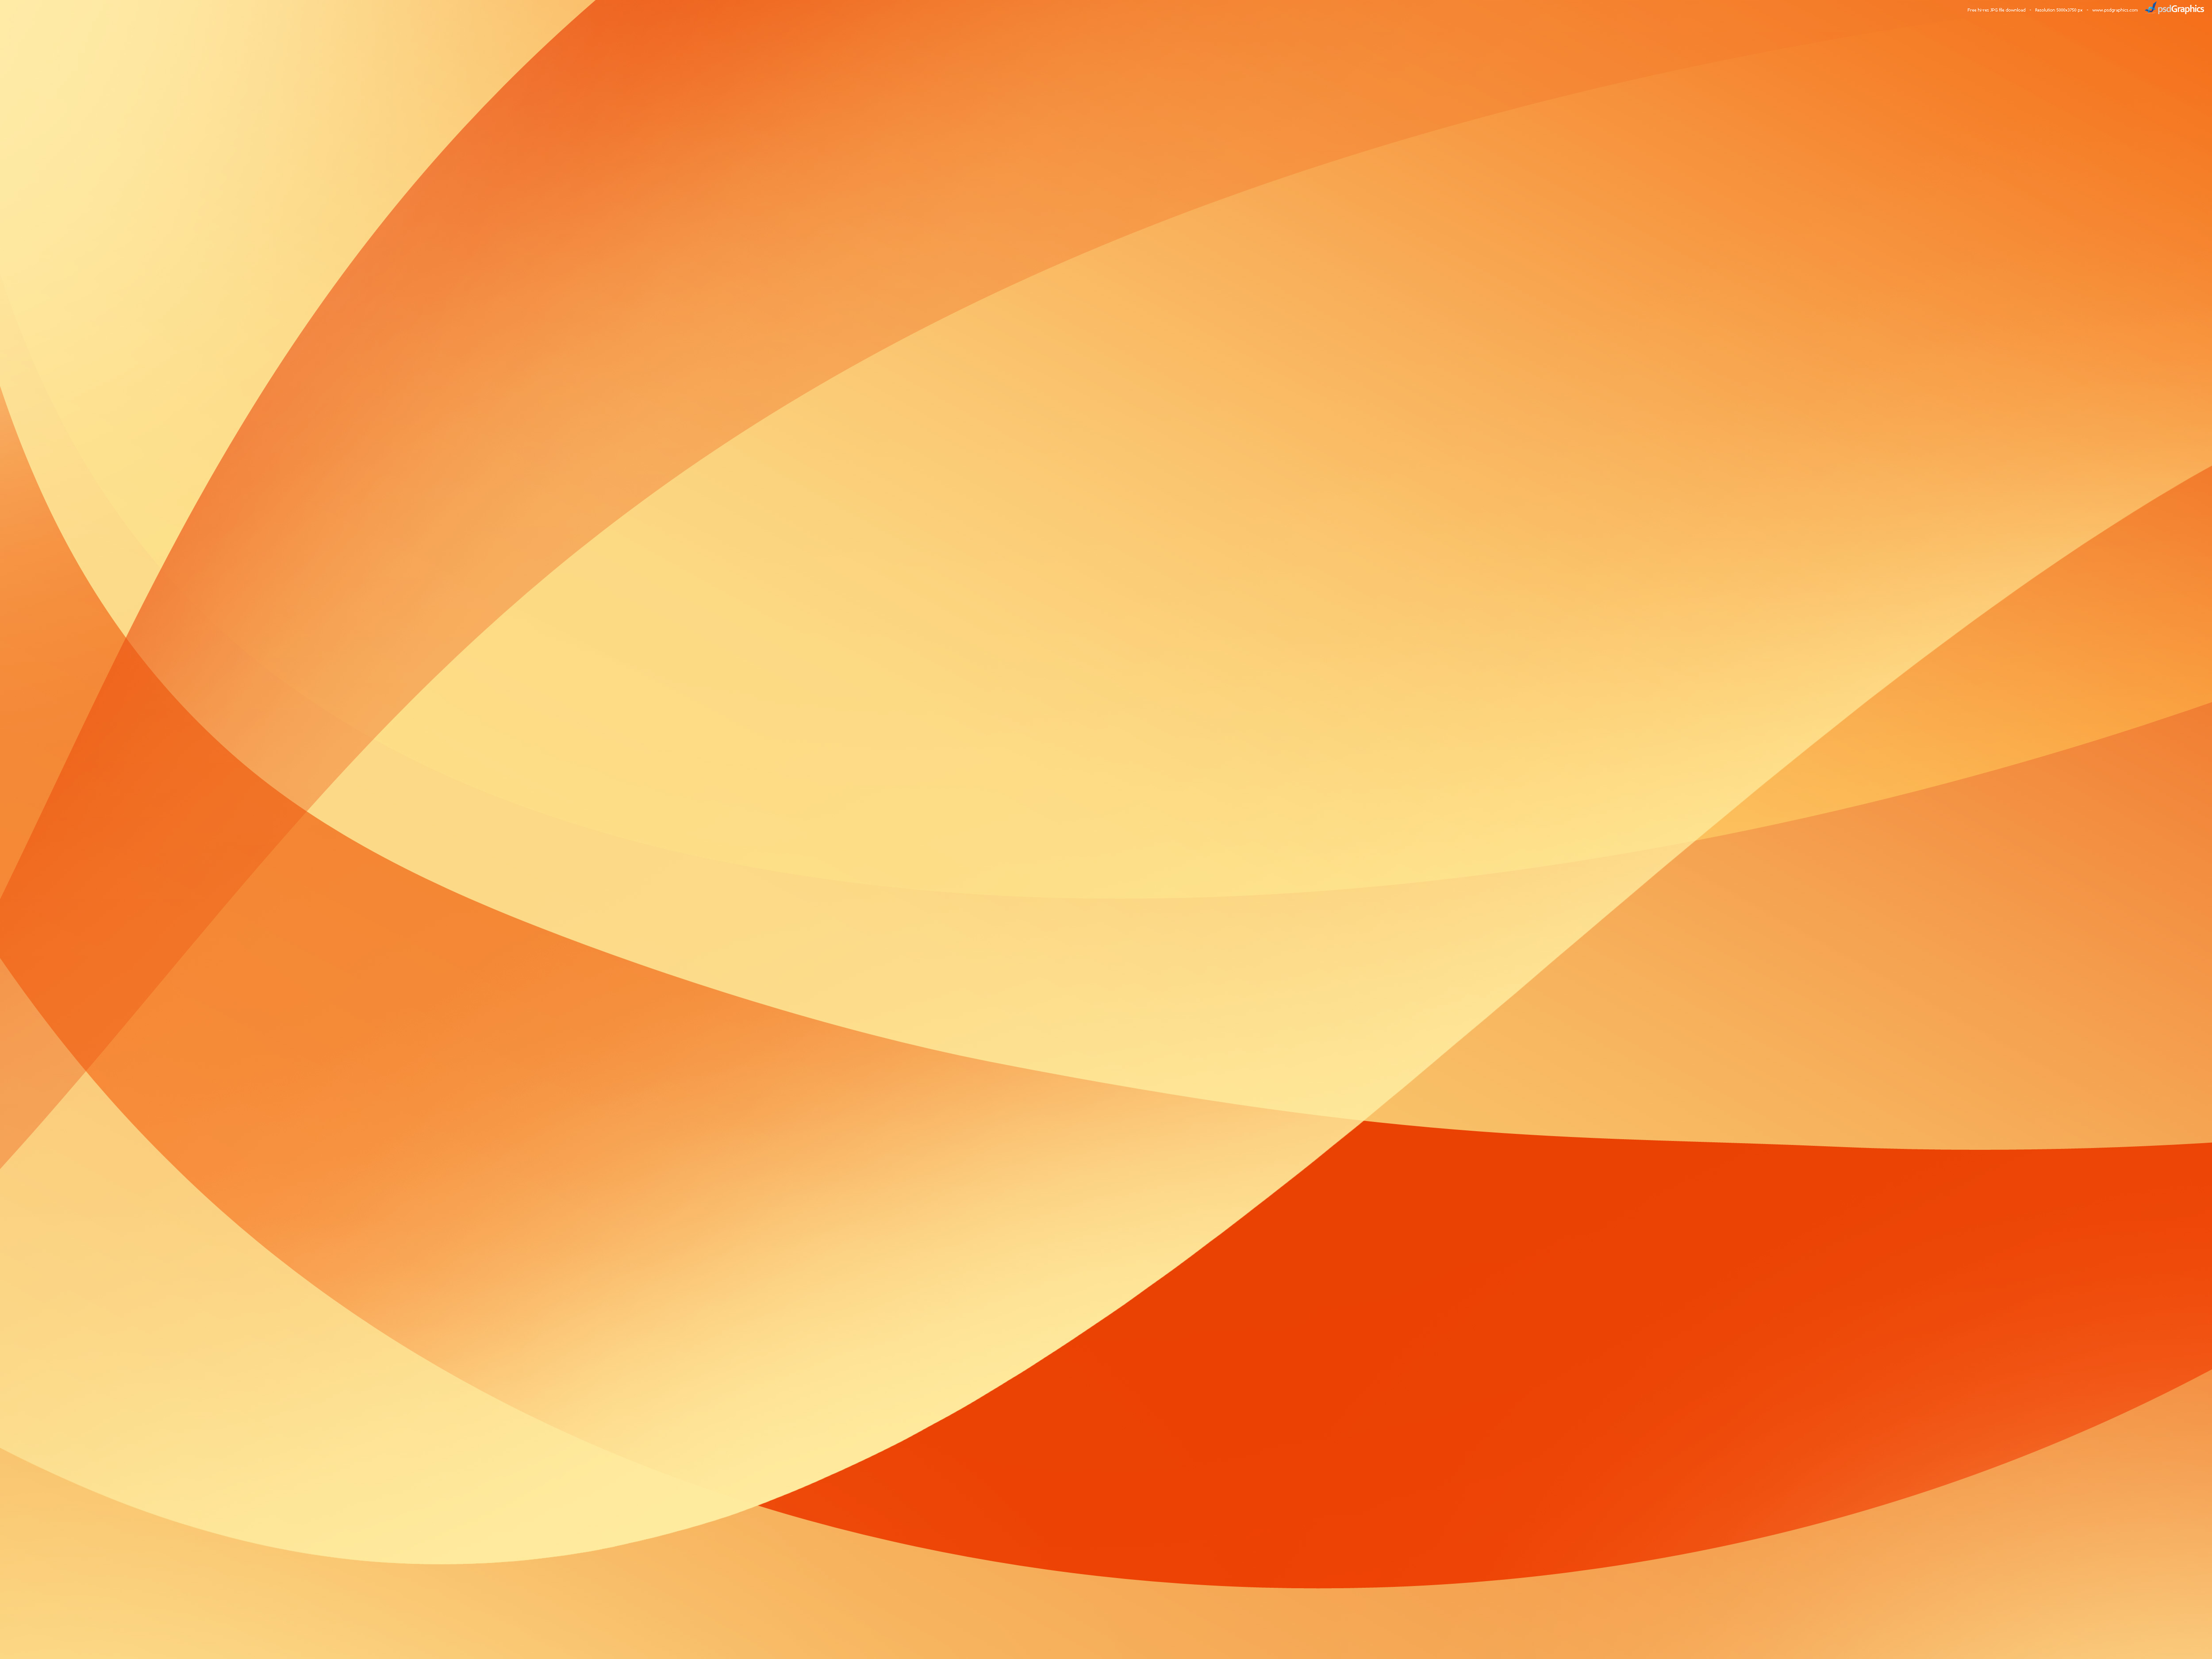 Orange background 5000x3750